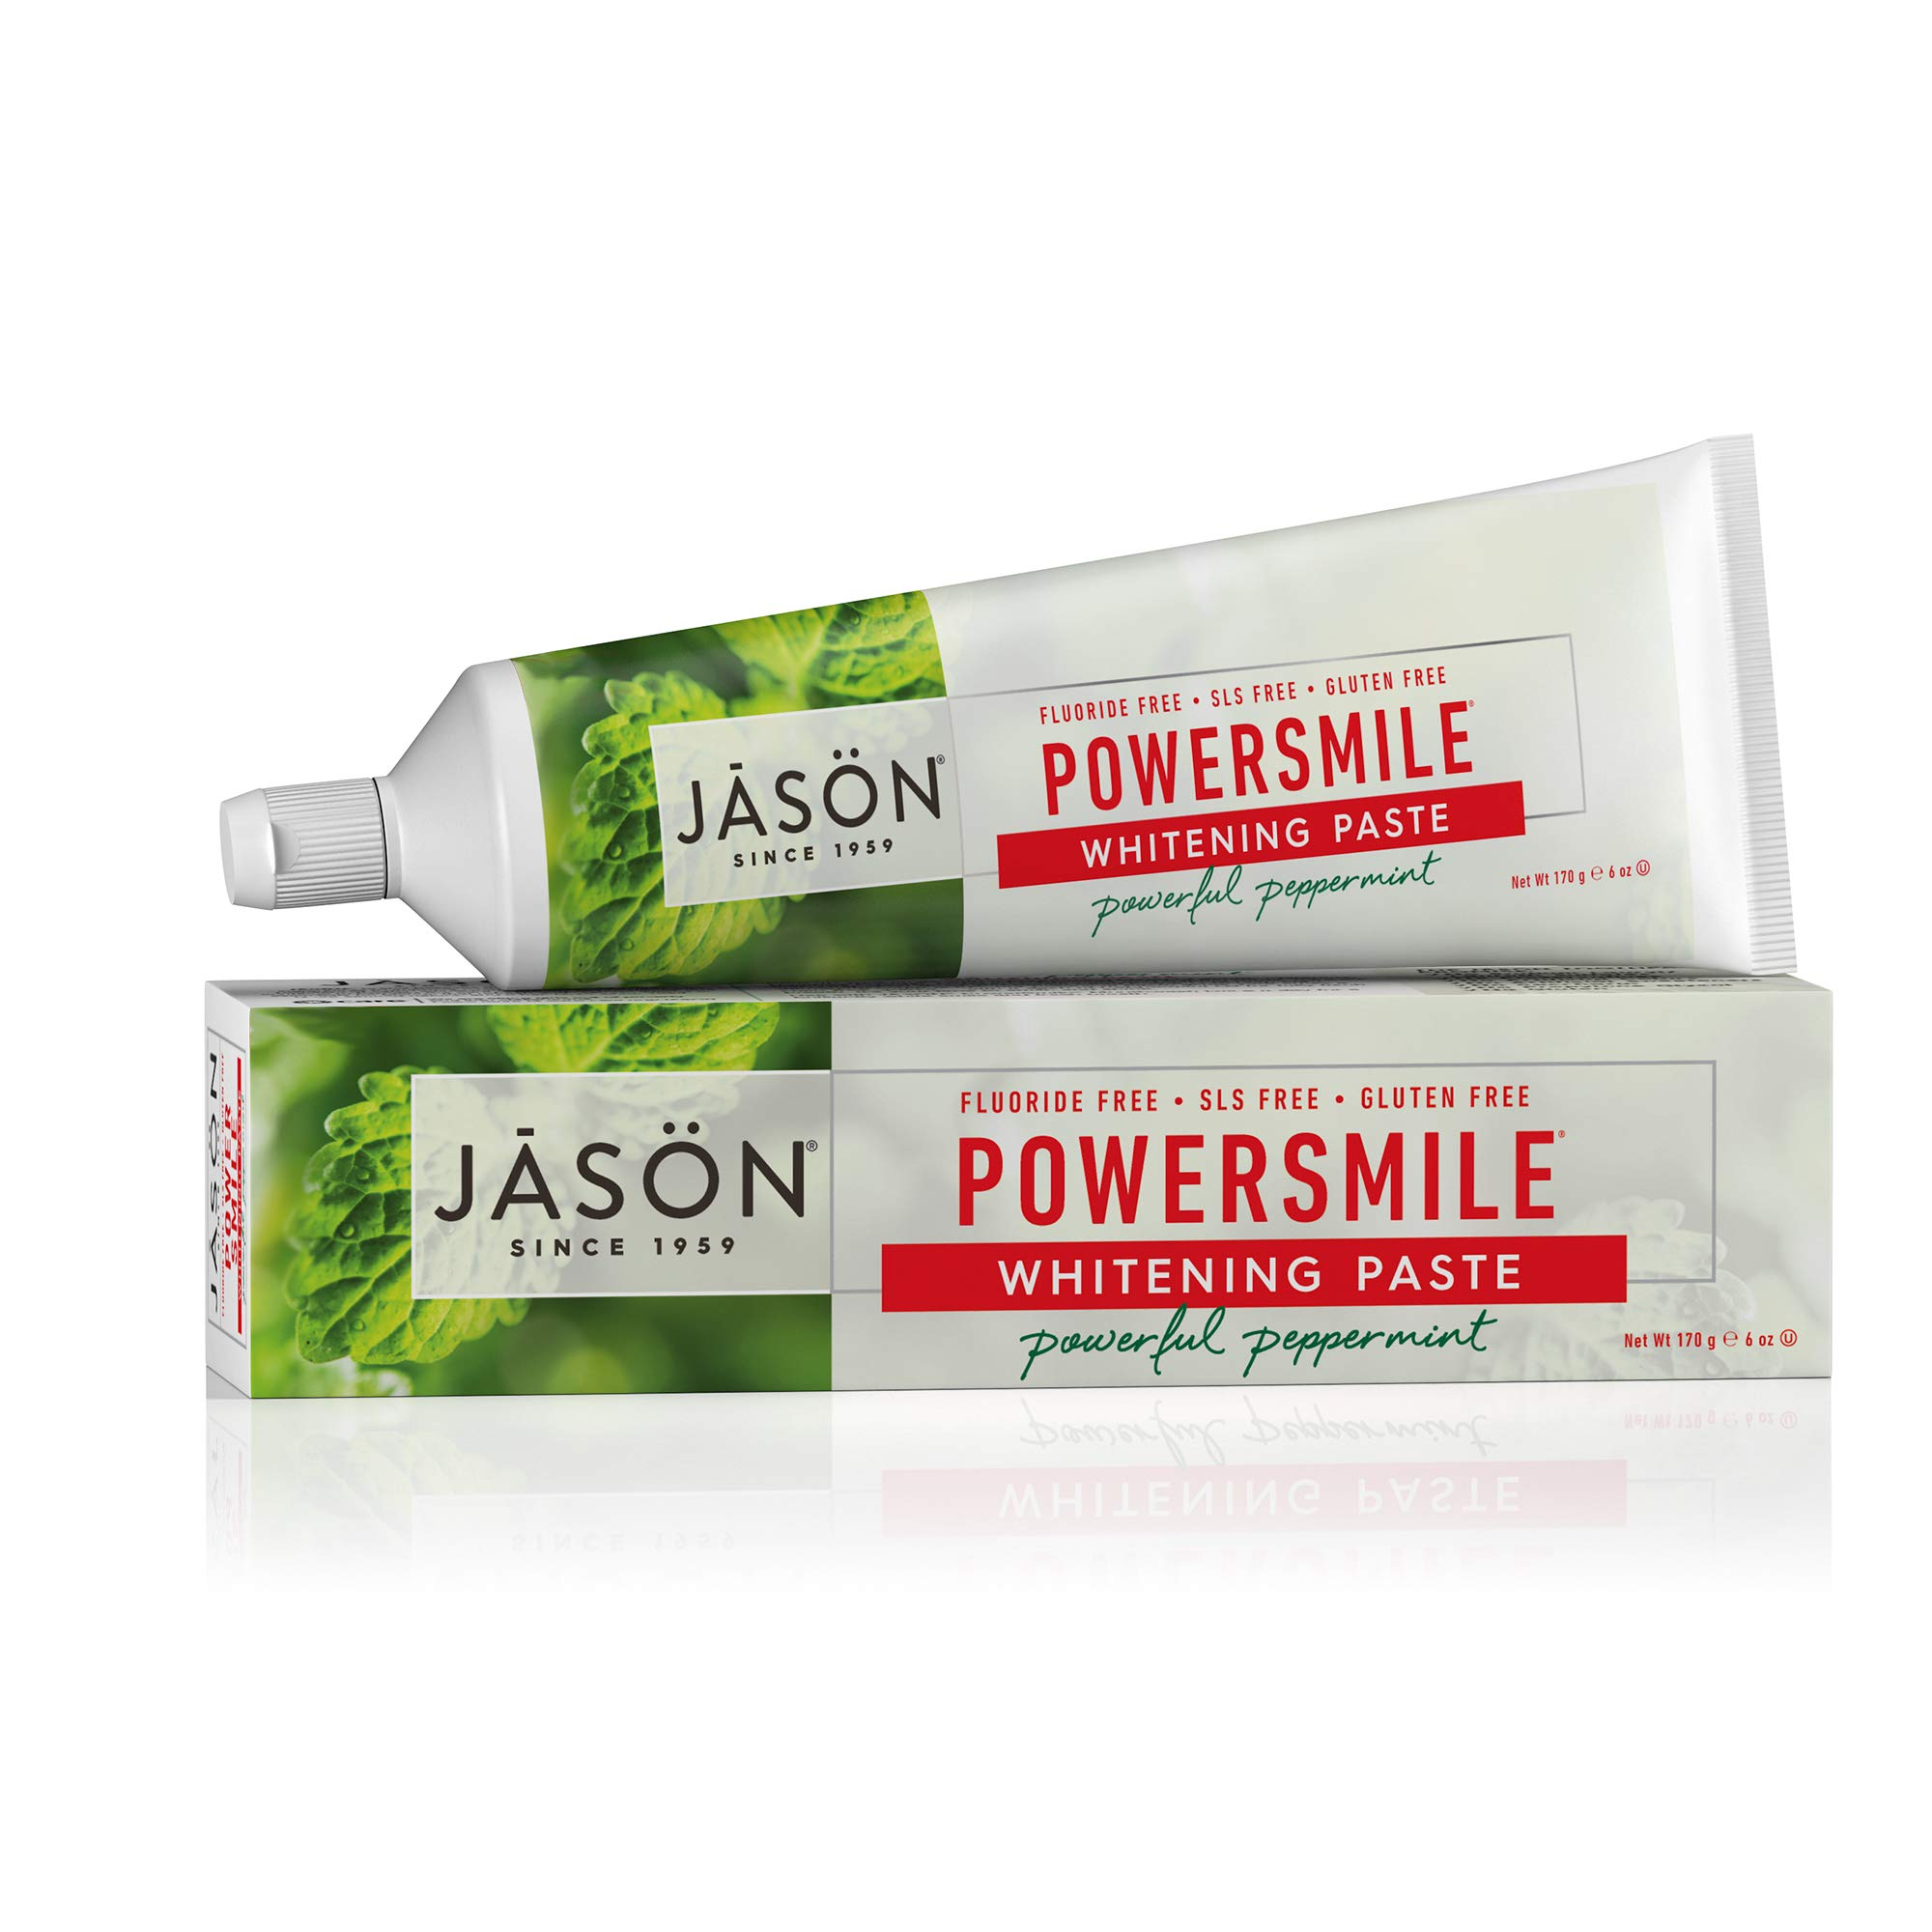 JASON Powersmile Whitening Fluoride-Free Toothpaste, Powerful Peppermint, 6 Ounce Tube